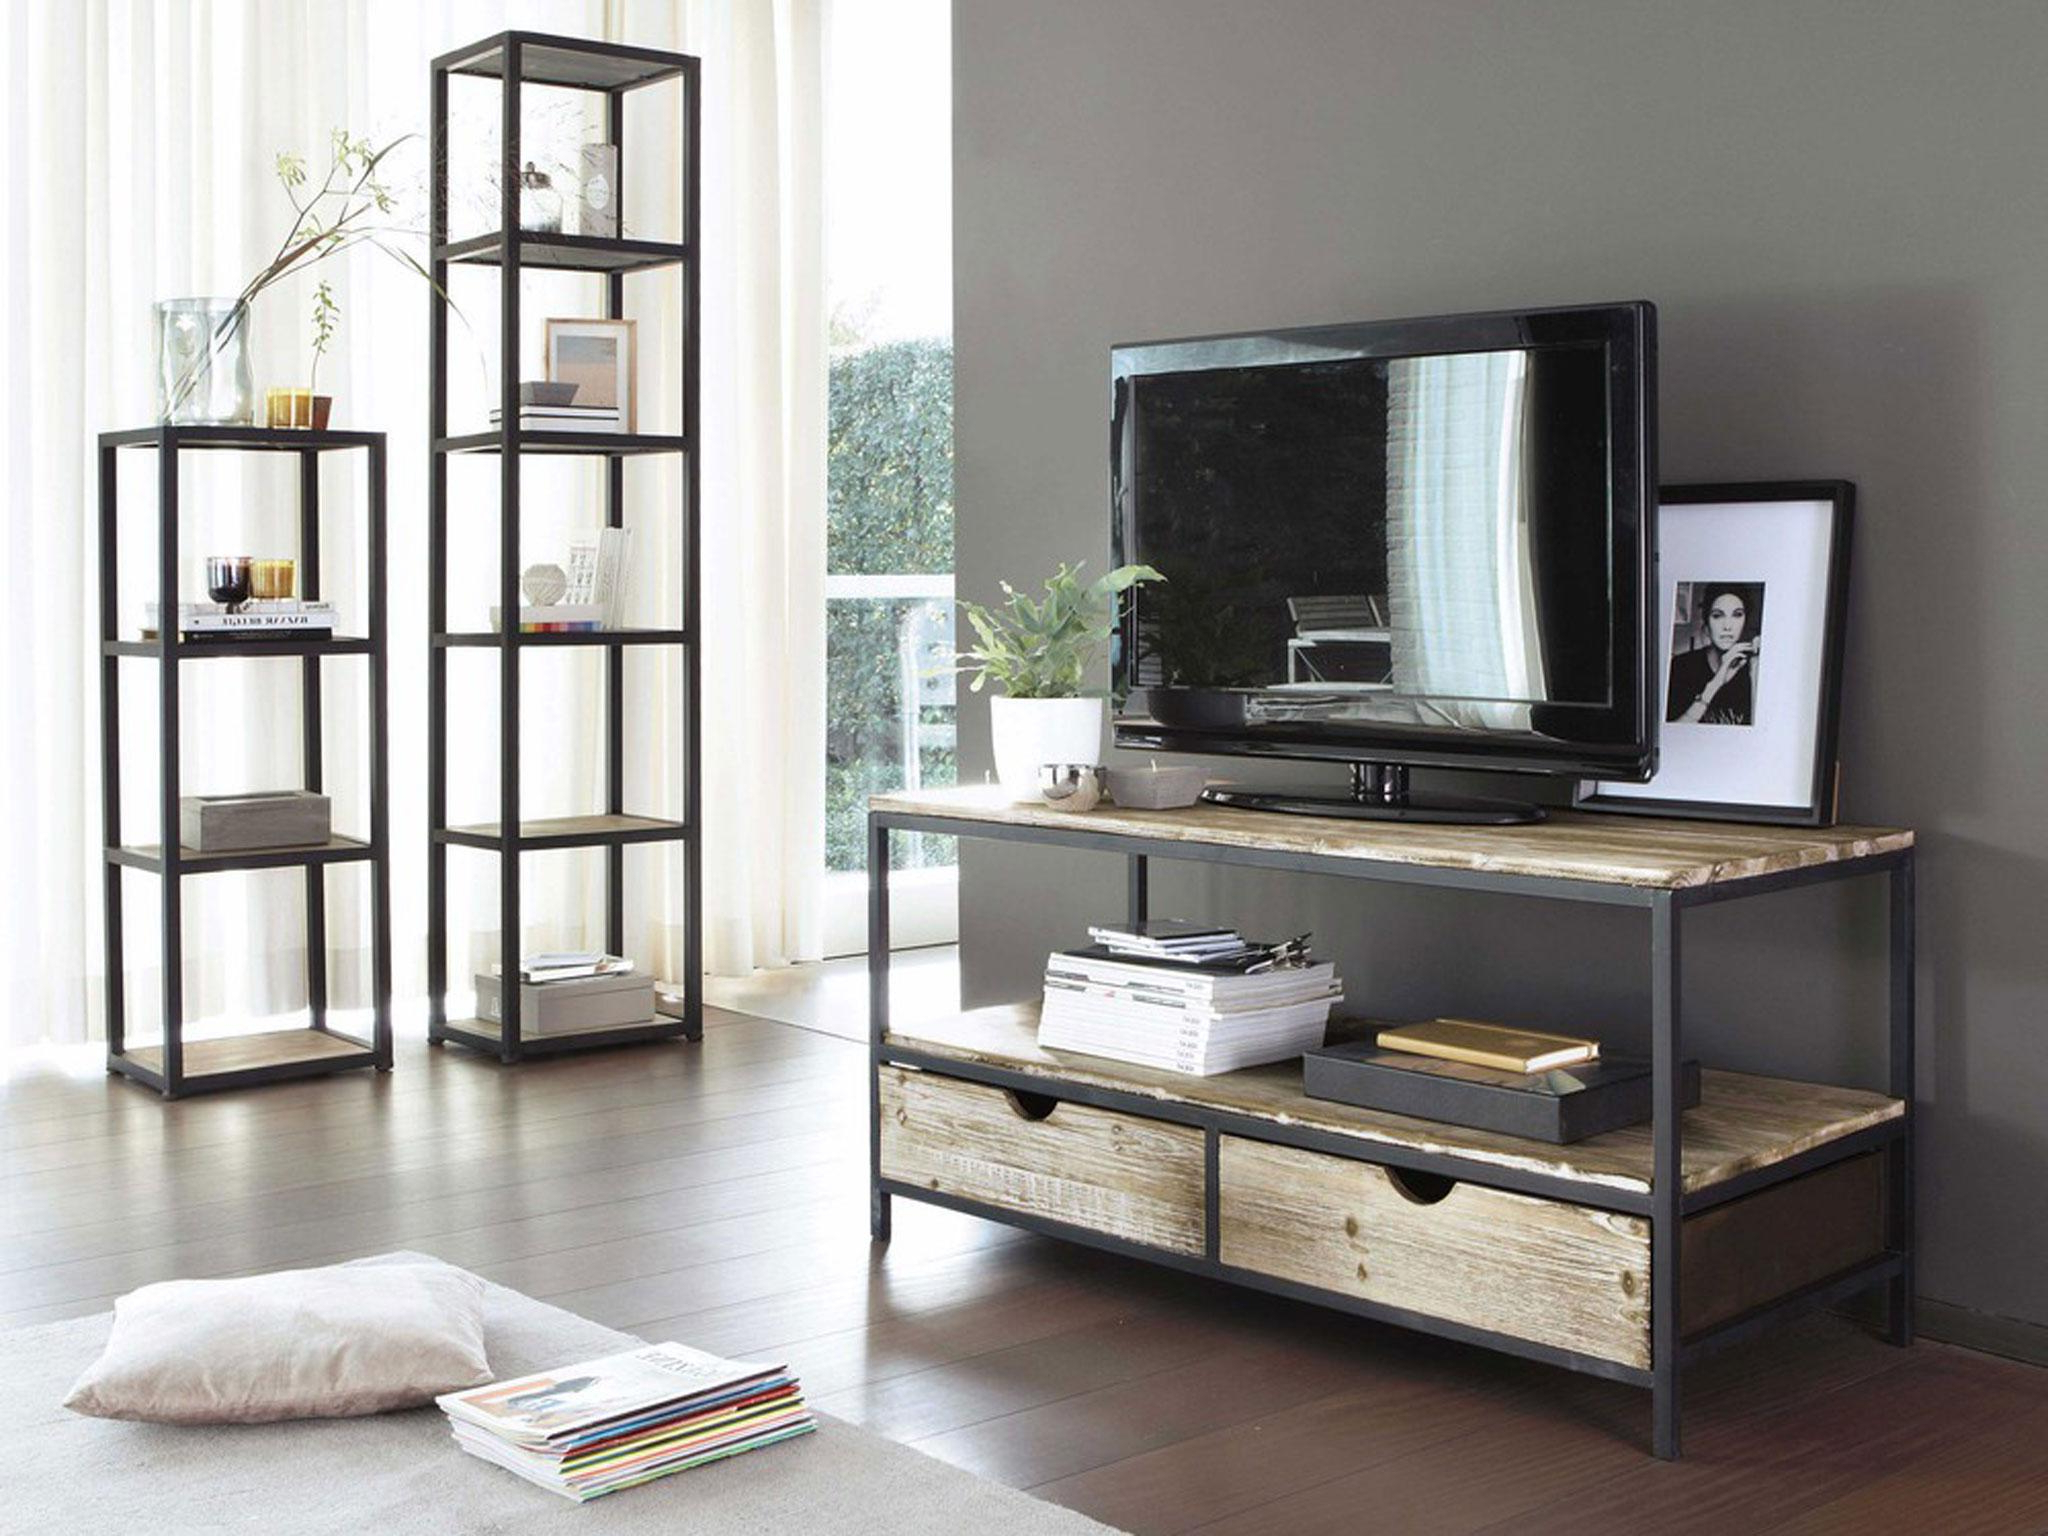 2017 10 Best Tv Stands (View 16 of 20)